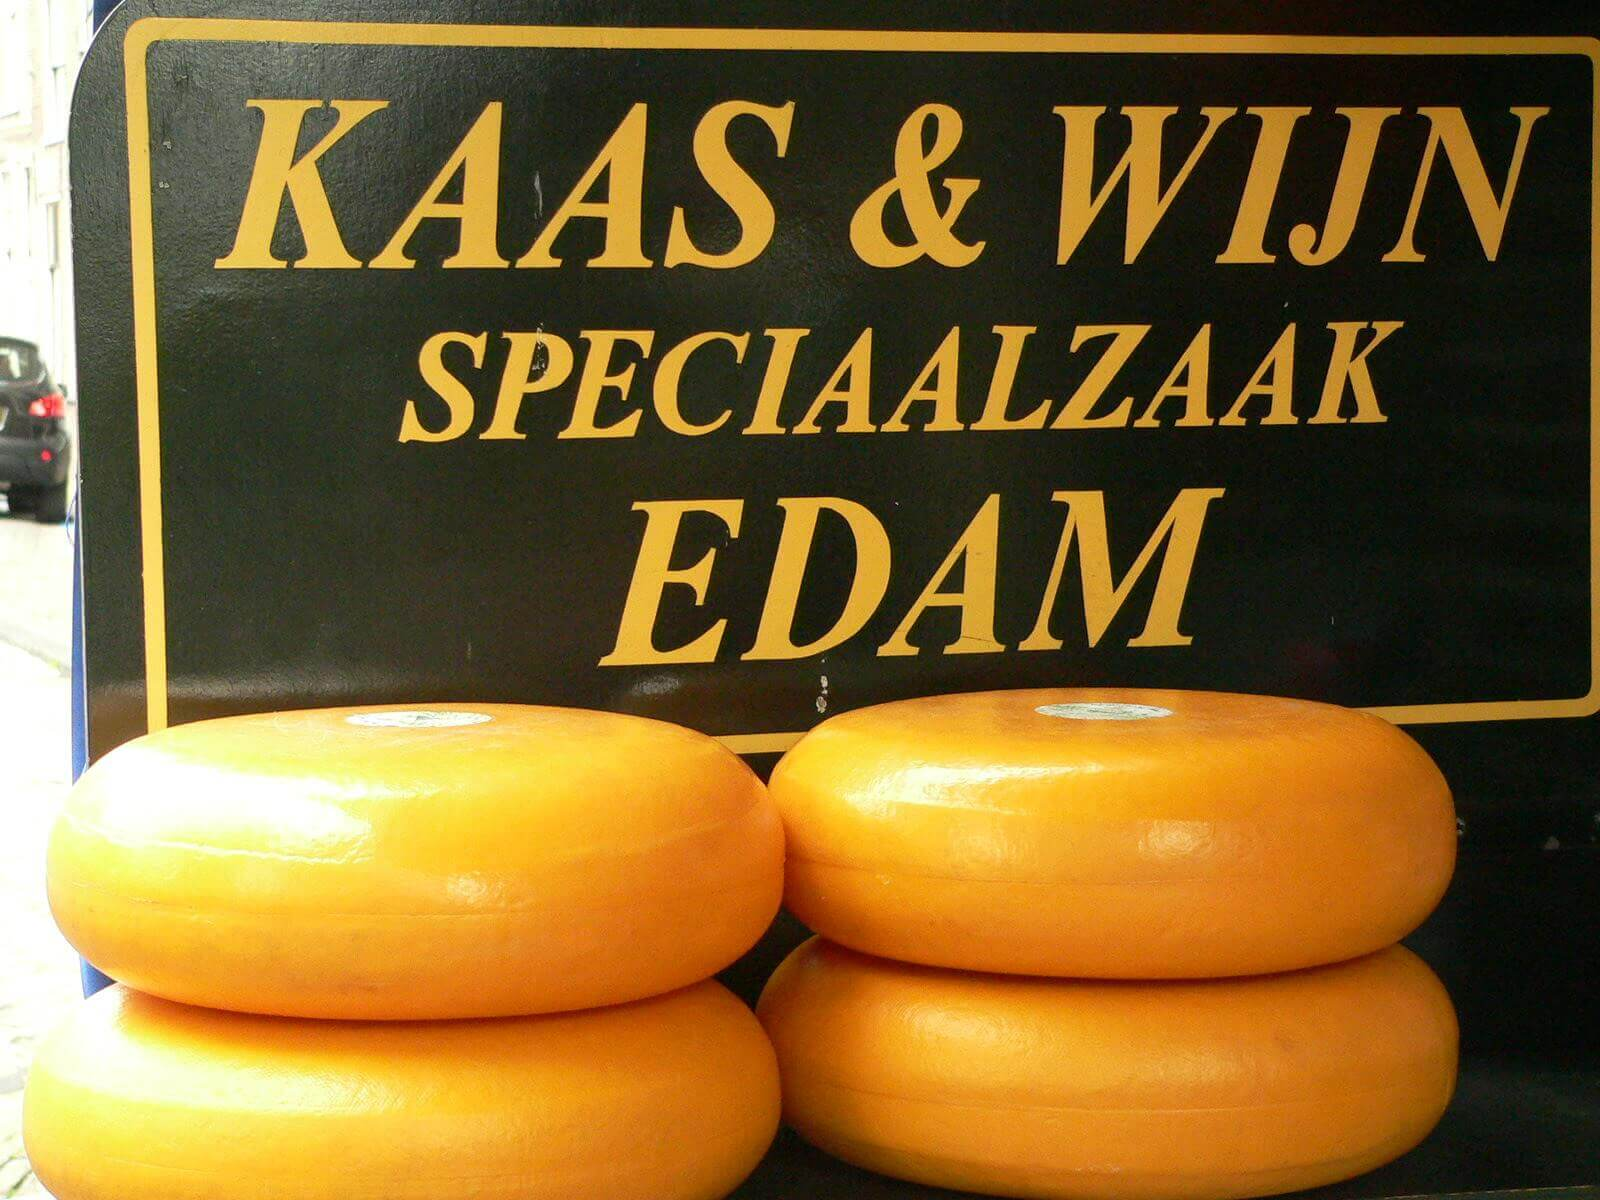 Famous Edam cheese. Taken by Alkan Boudewijn de Beaumont Chaglar via Flickr.